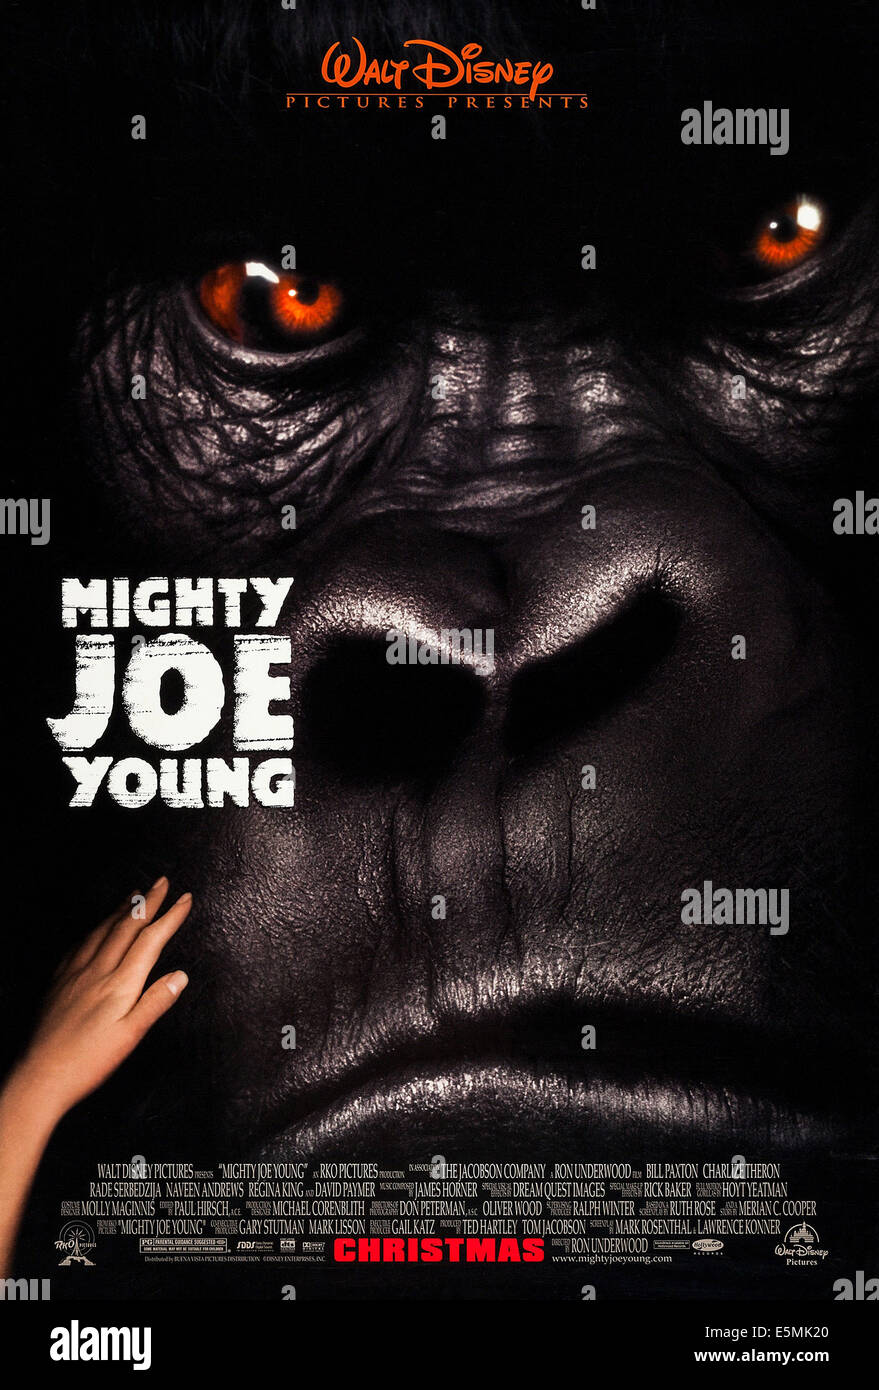 MIGHTY JOE YOUNG, US advance poster art, 1998, © Buena Vista/courtesy Everett Collection - Stock Image